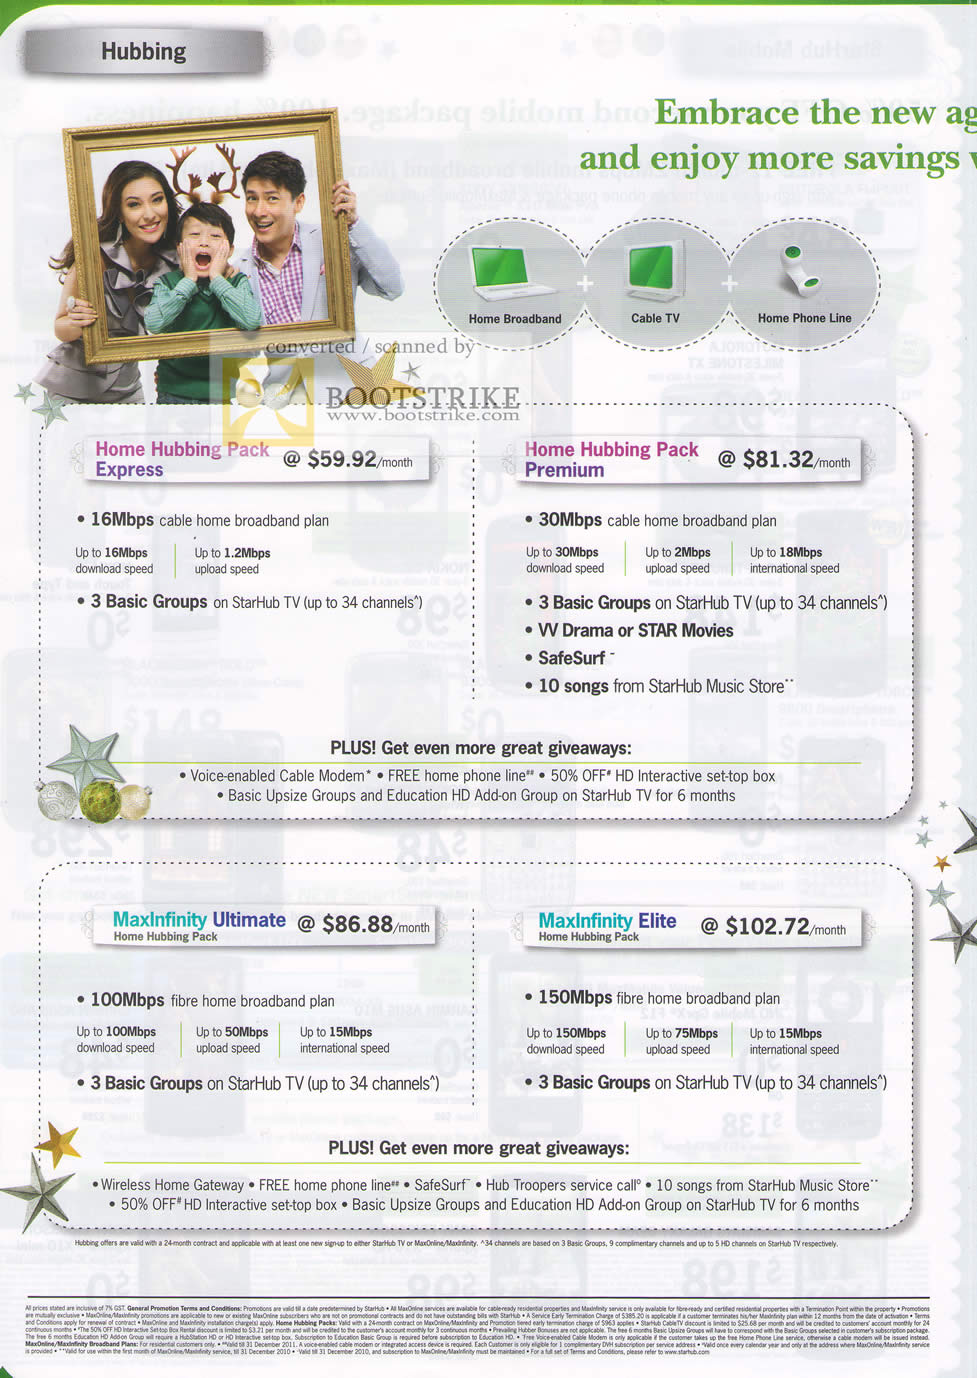 Sitex 2010 price list image brochure of Starhub Home Hubbing Pack Express Premium MaxInfinity Ultimate Elite